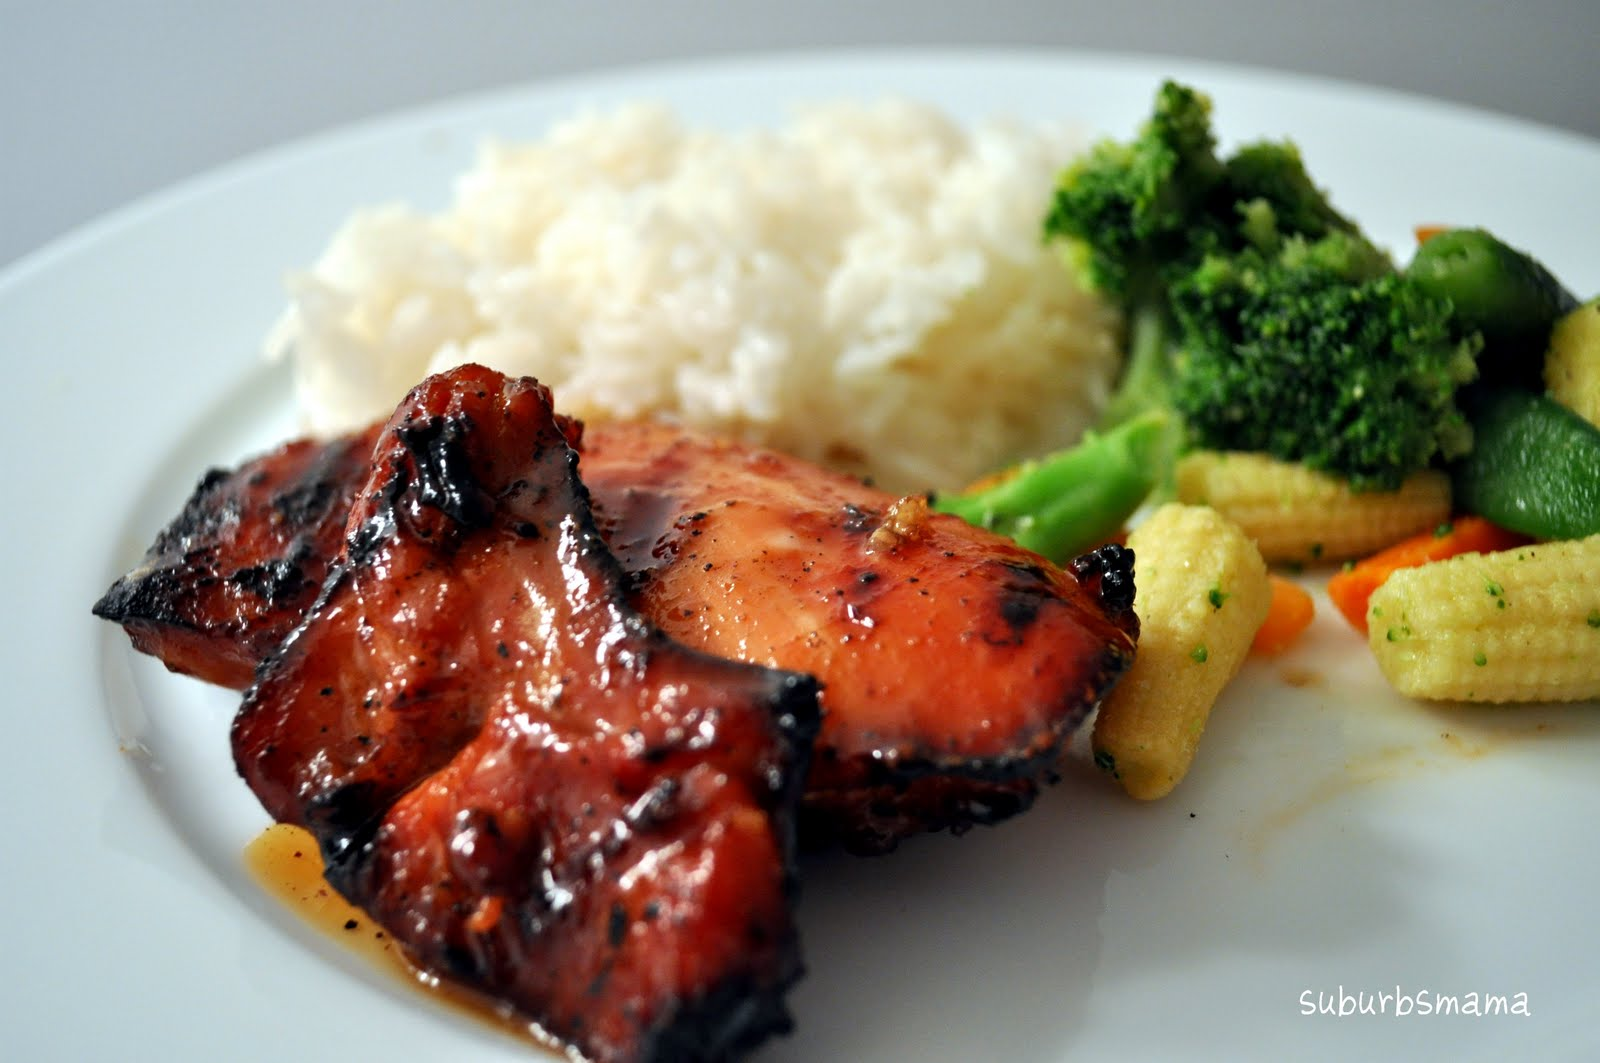 Suburbs Mama: Grilled Teriyaki Chicken